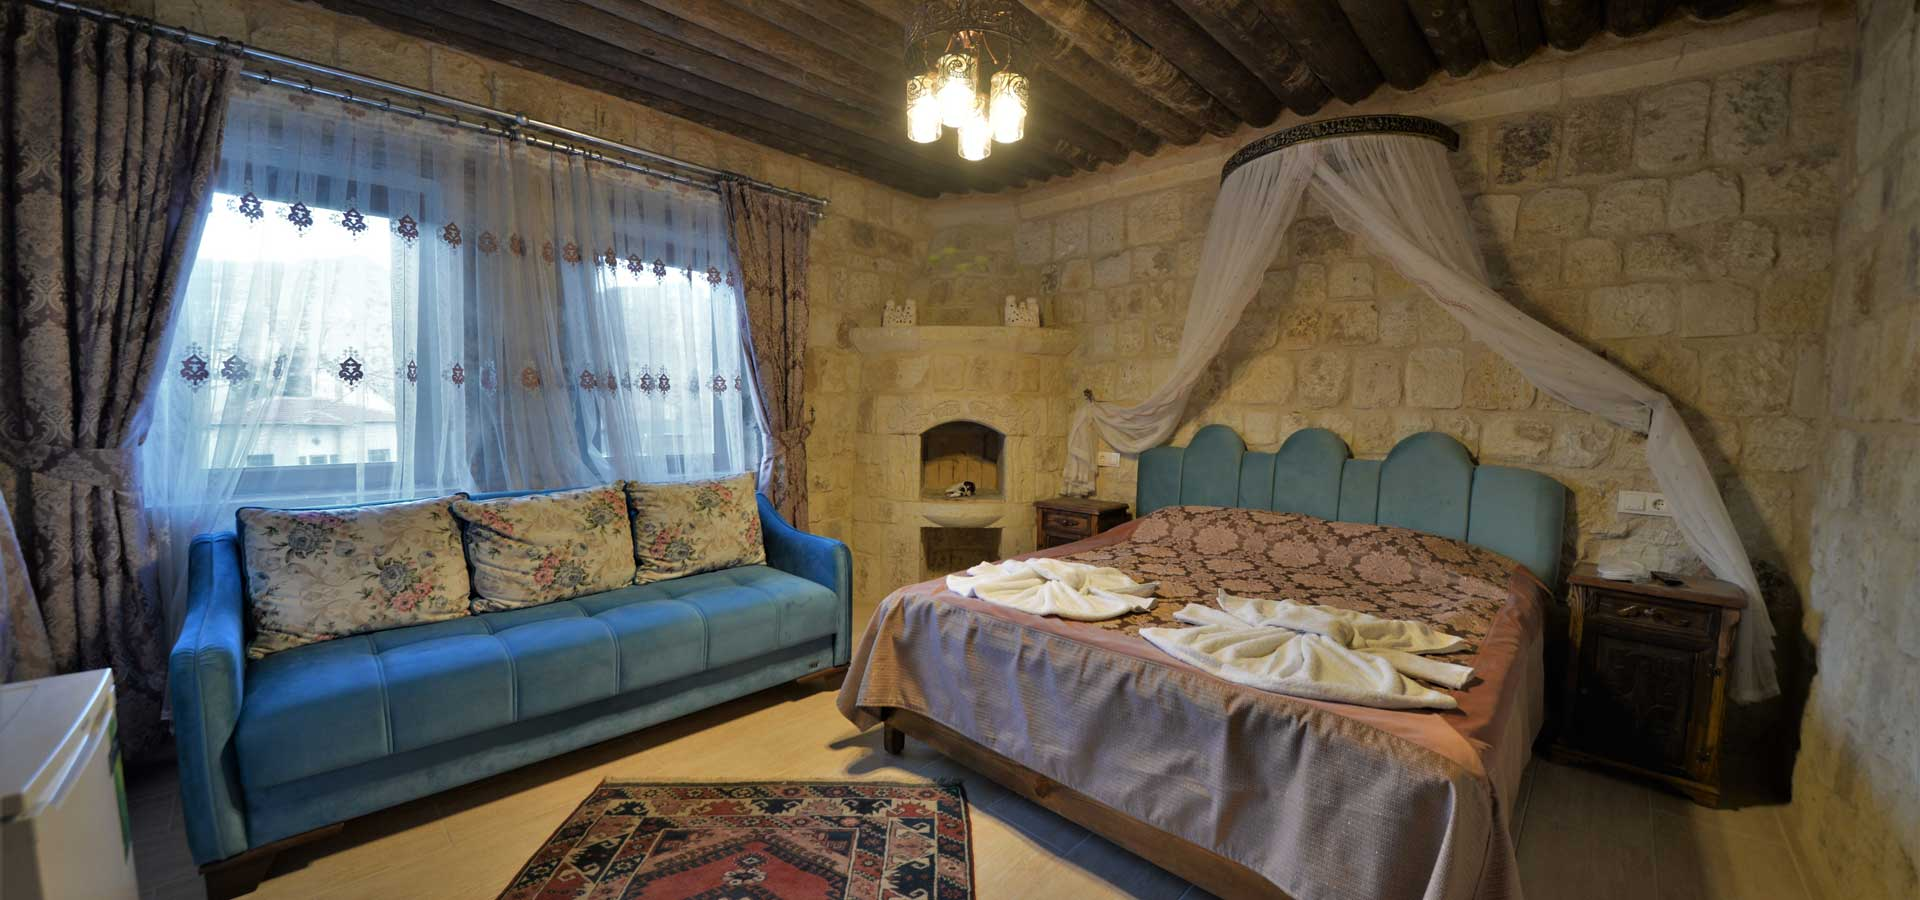 209-Honeymoon-Room-Dedeli-Konak